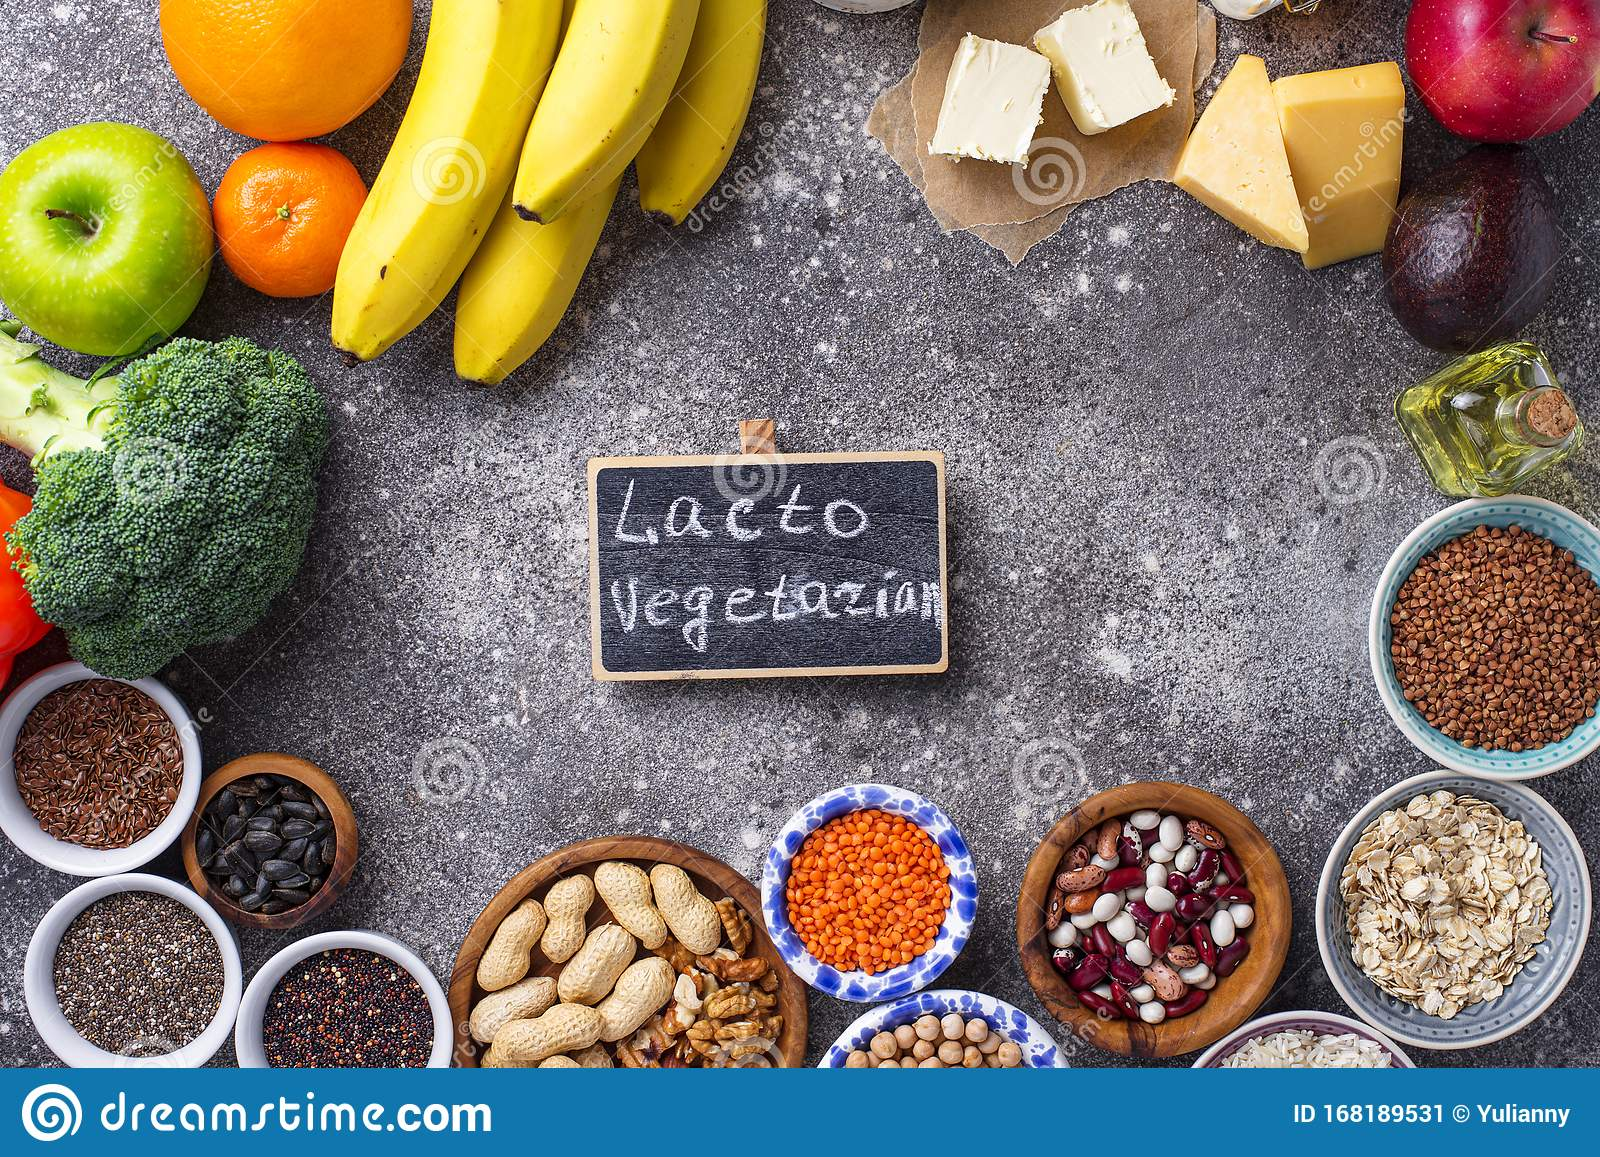 Lacto Vegetarian Diet Concept Healthy Food Stock Image Image Of Lacto Health 168189531